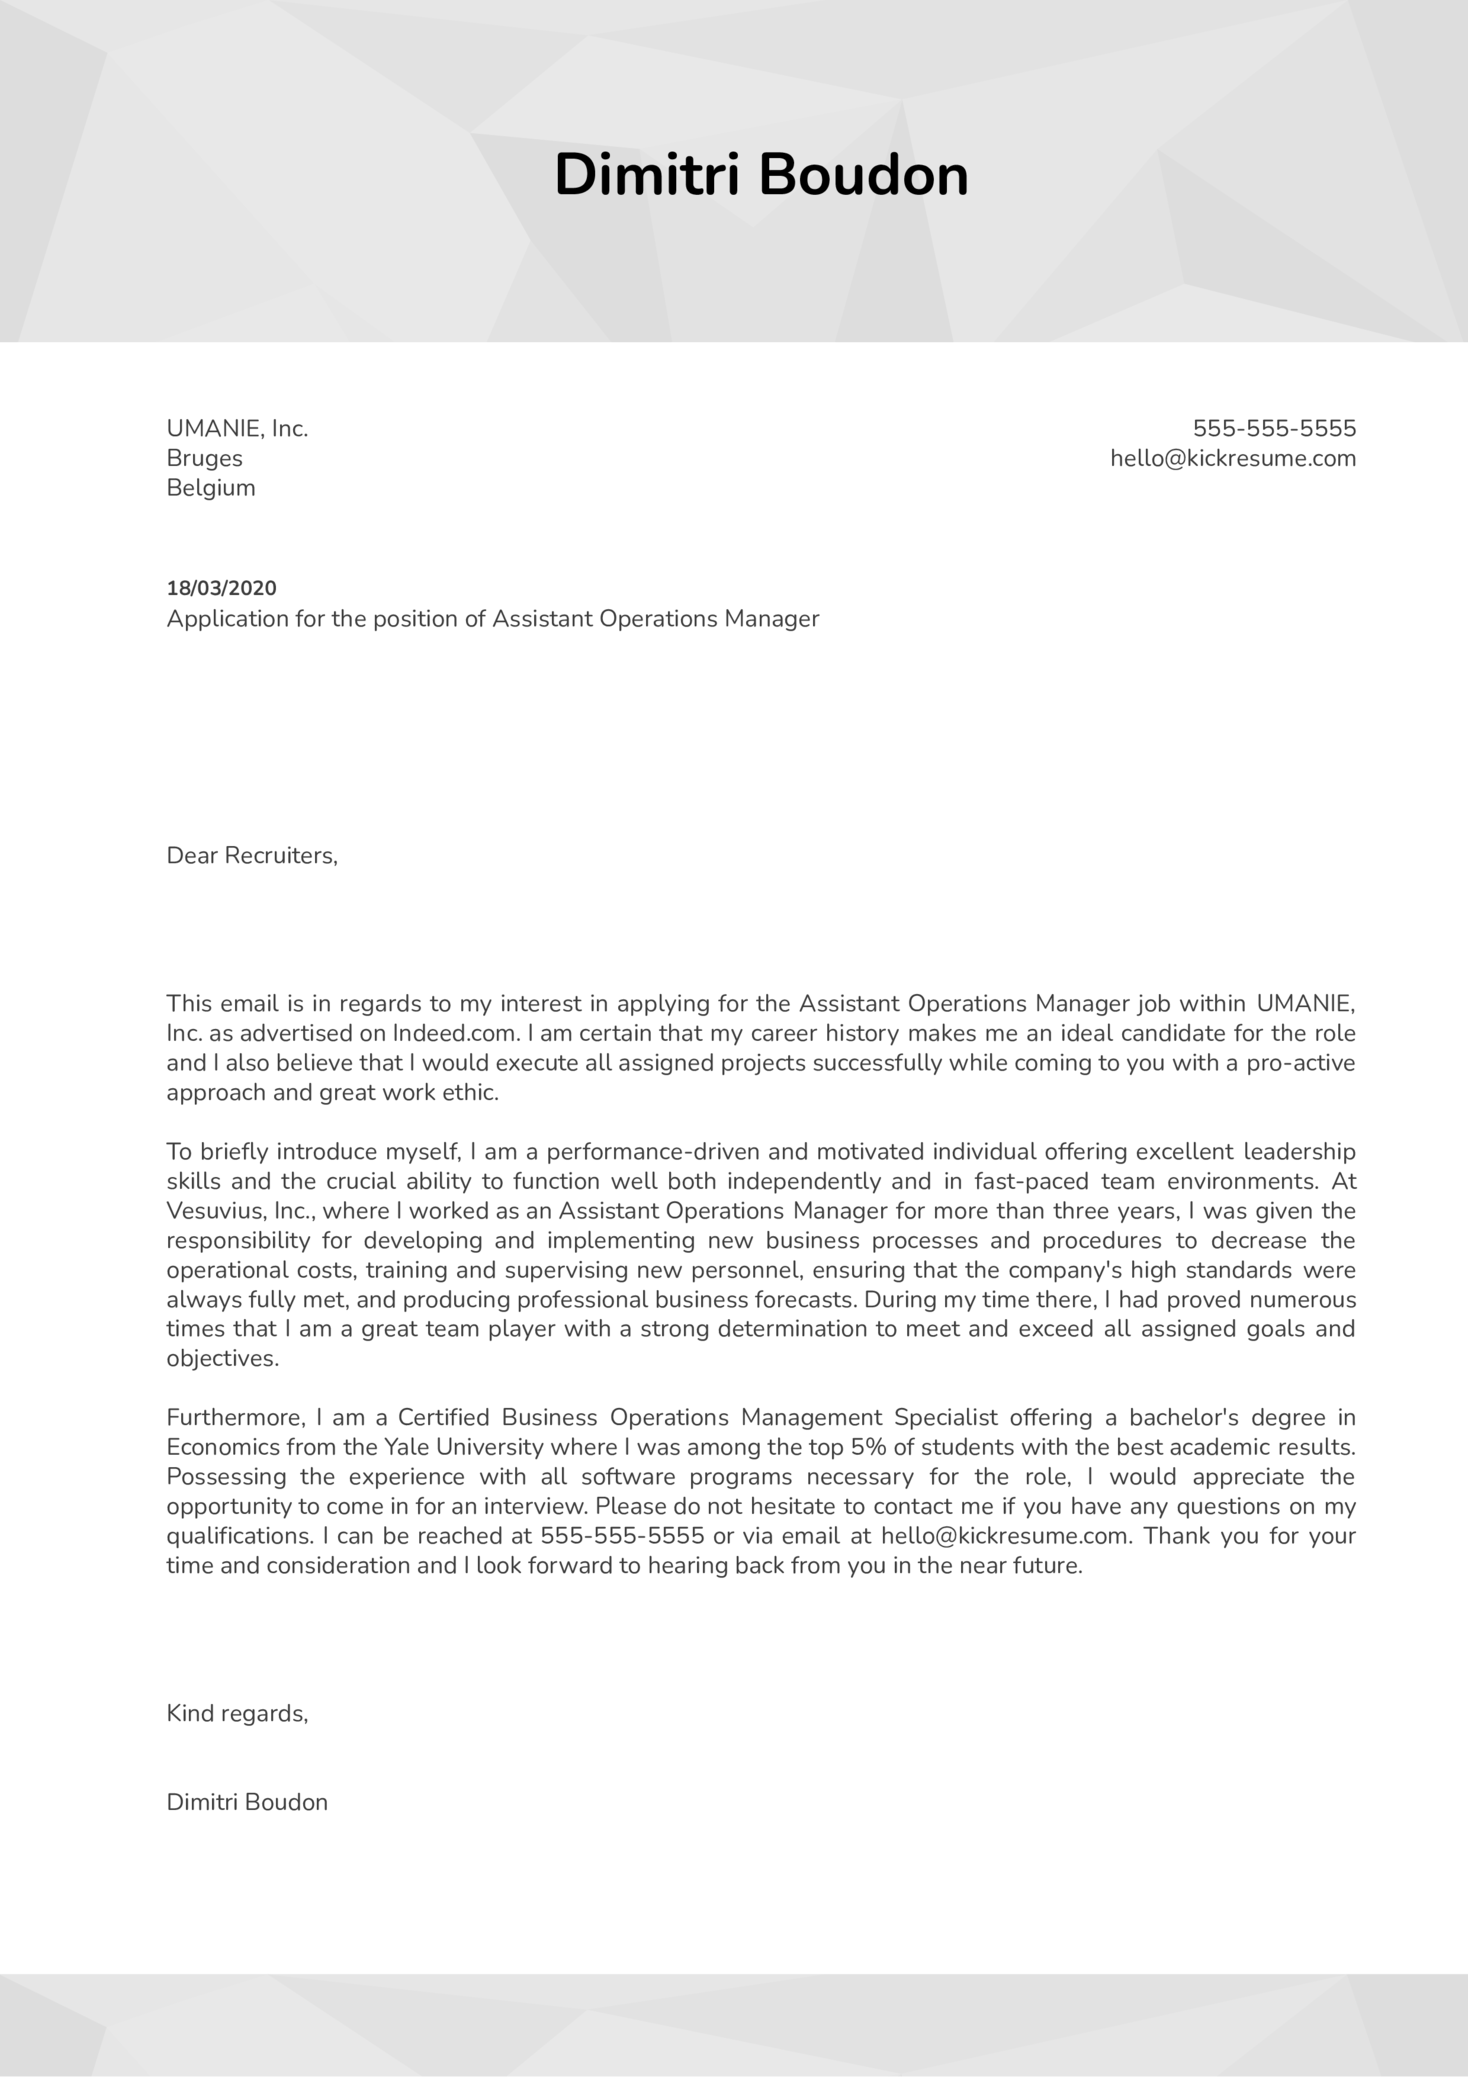 Assistant Operations Manager Cover Letter Example